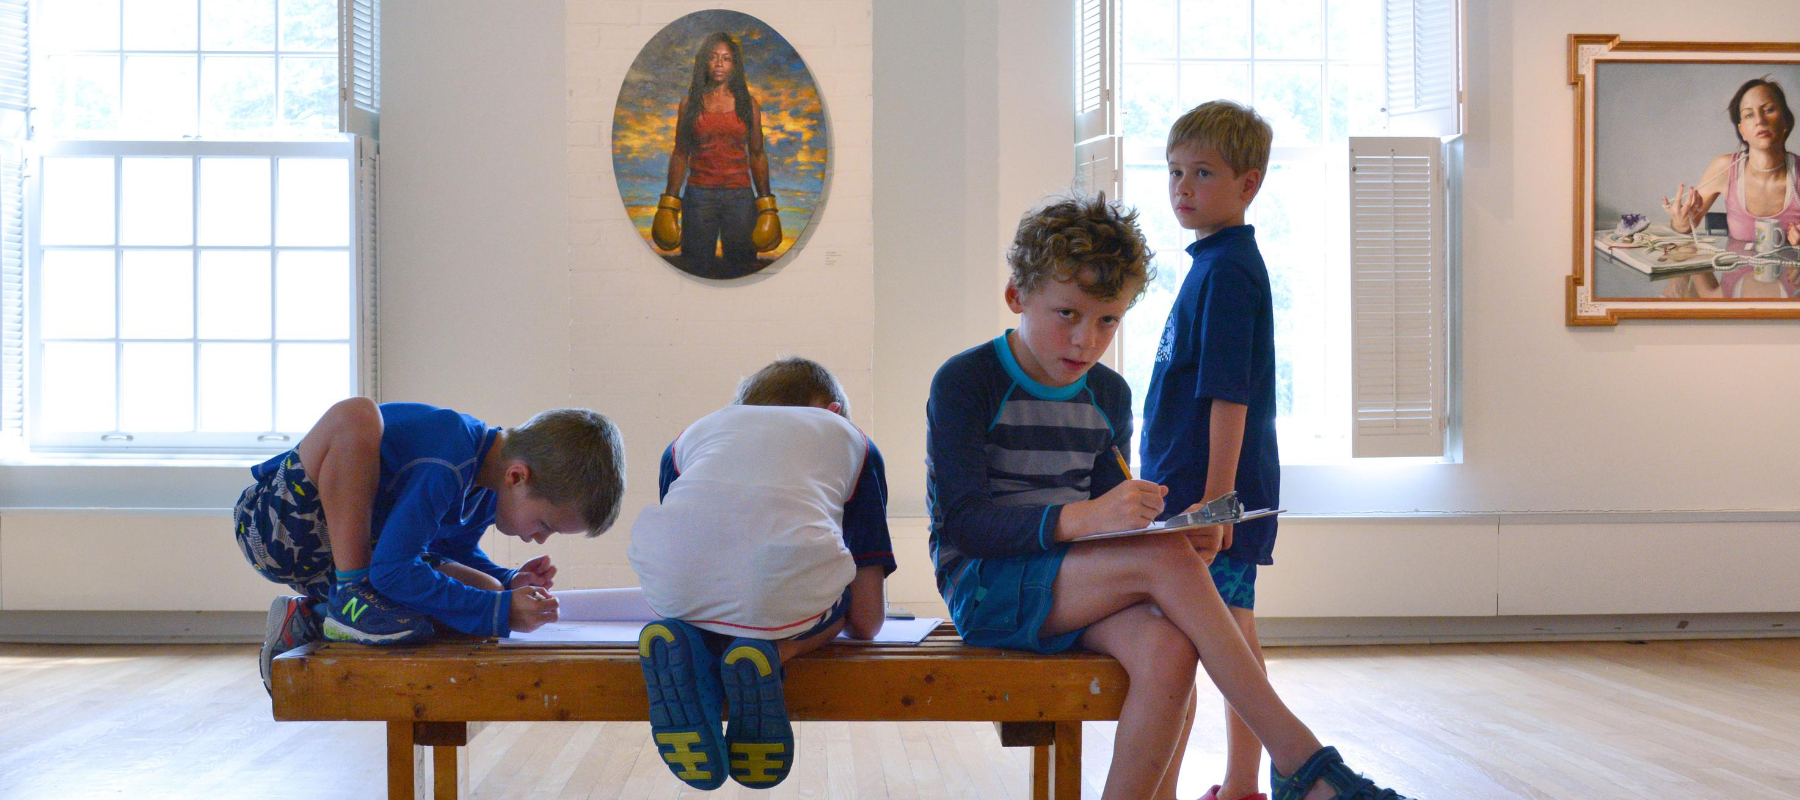 Children writing on clipboards in an art gallery.